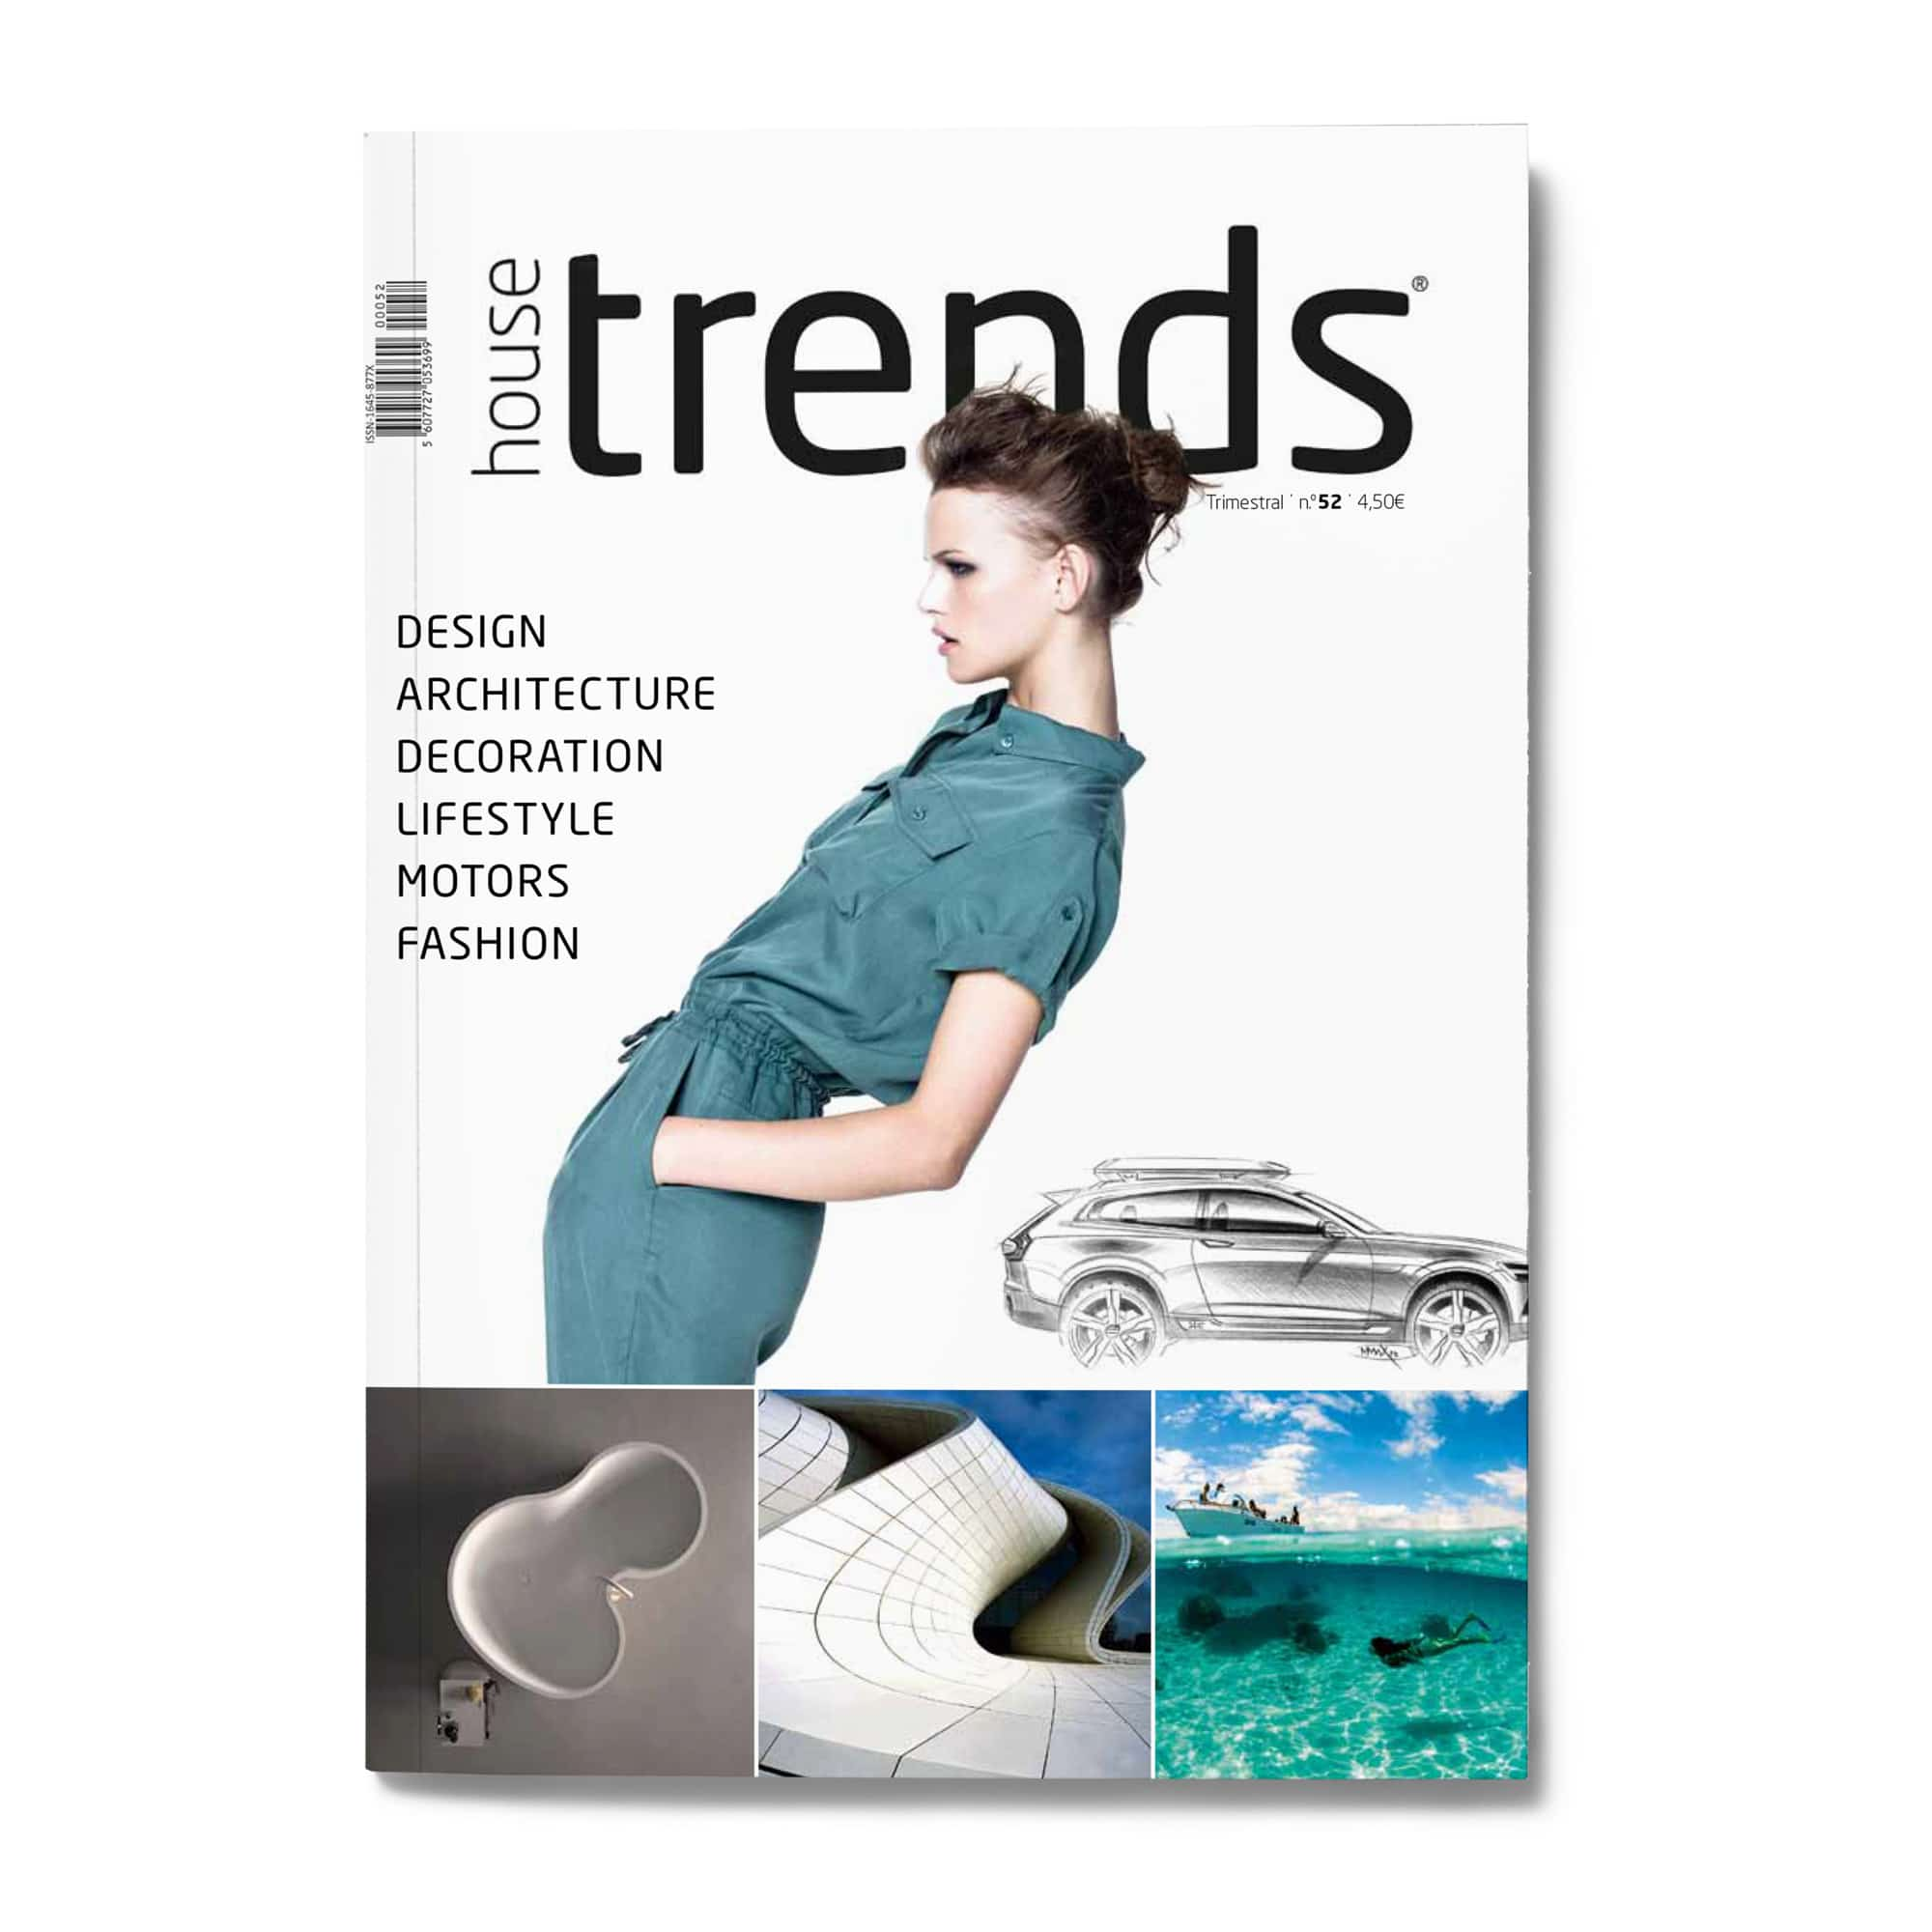 House_Trends Front Page